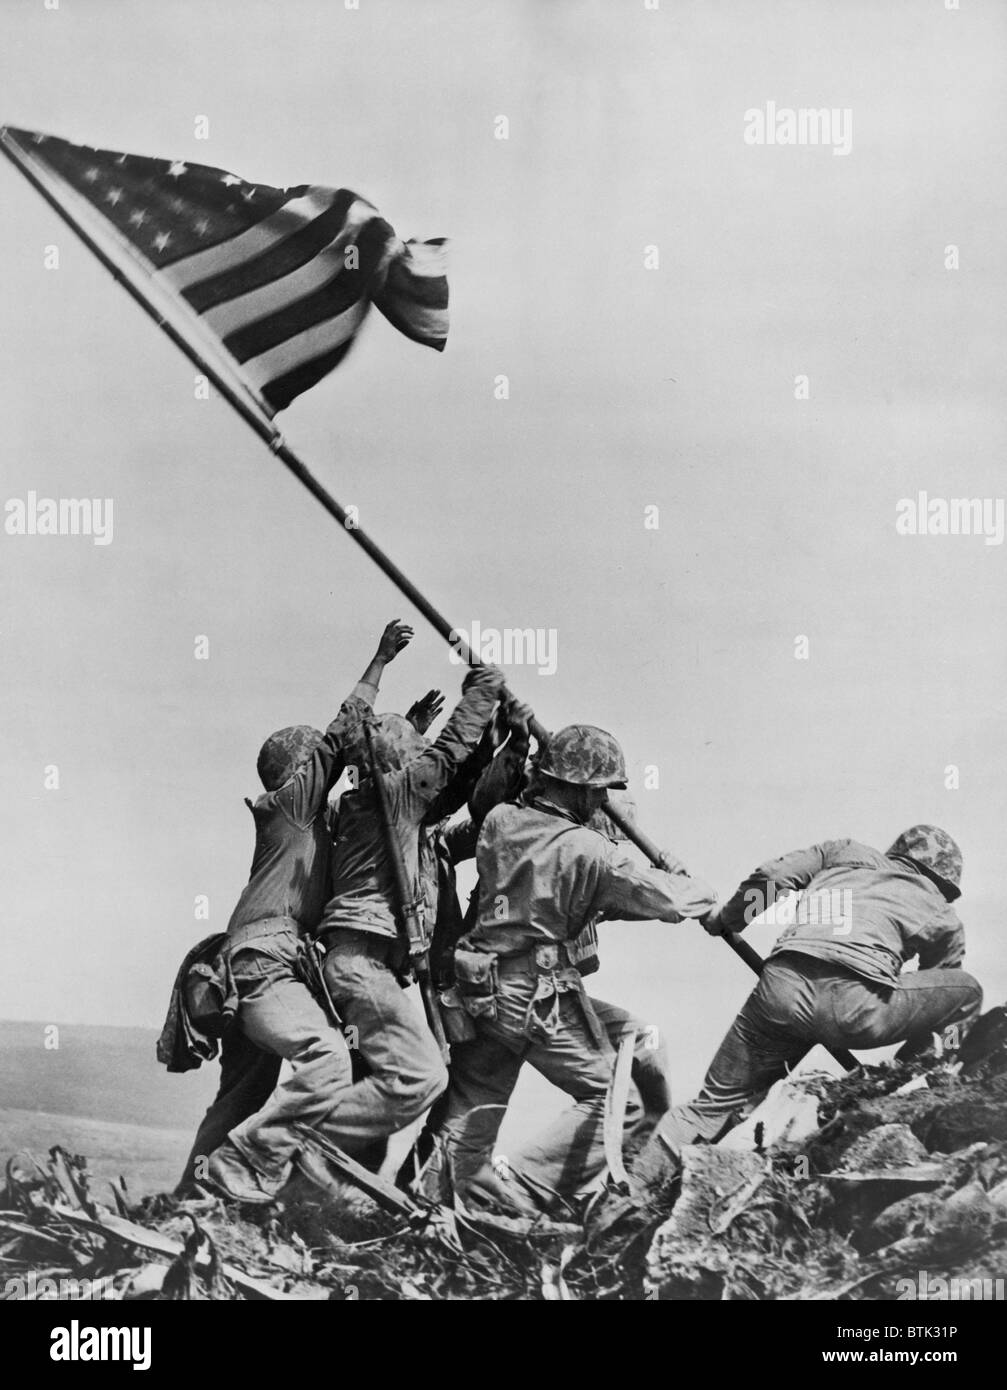 American Marines raising US flag on Mount Suribachi, Iwo Jima, Feb. 23, 1945. This is the second flag raising, using a larger flag visible to marines still ...